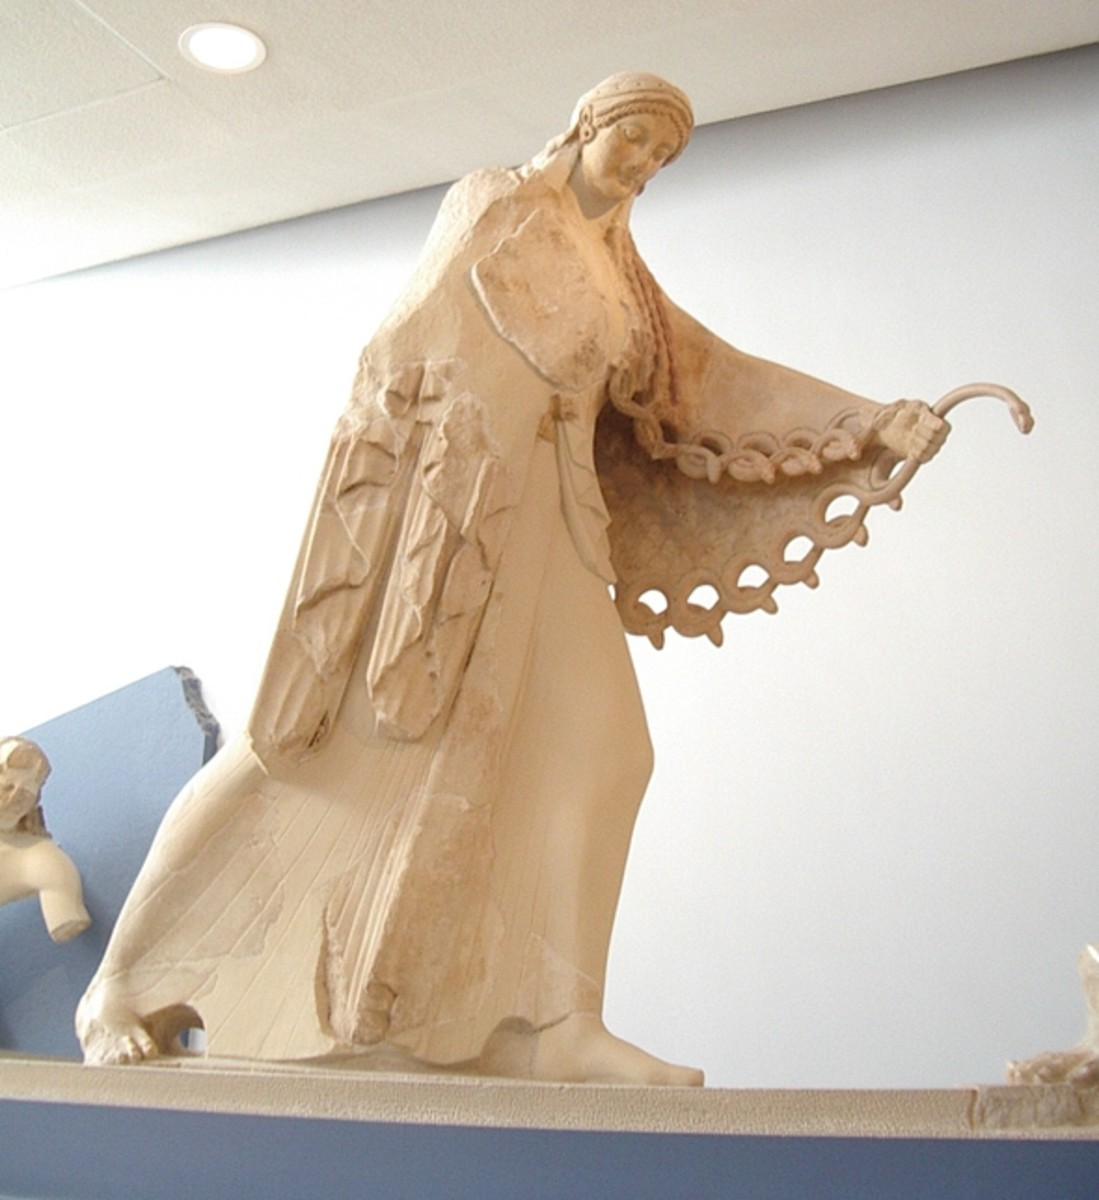 Archaic statue of the goddess Athena from pediment of her old temple, Acropolis Museum, Athens